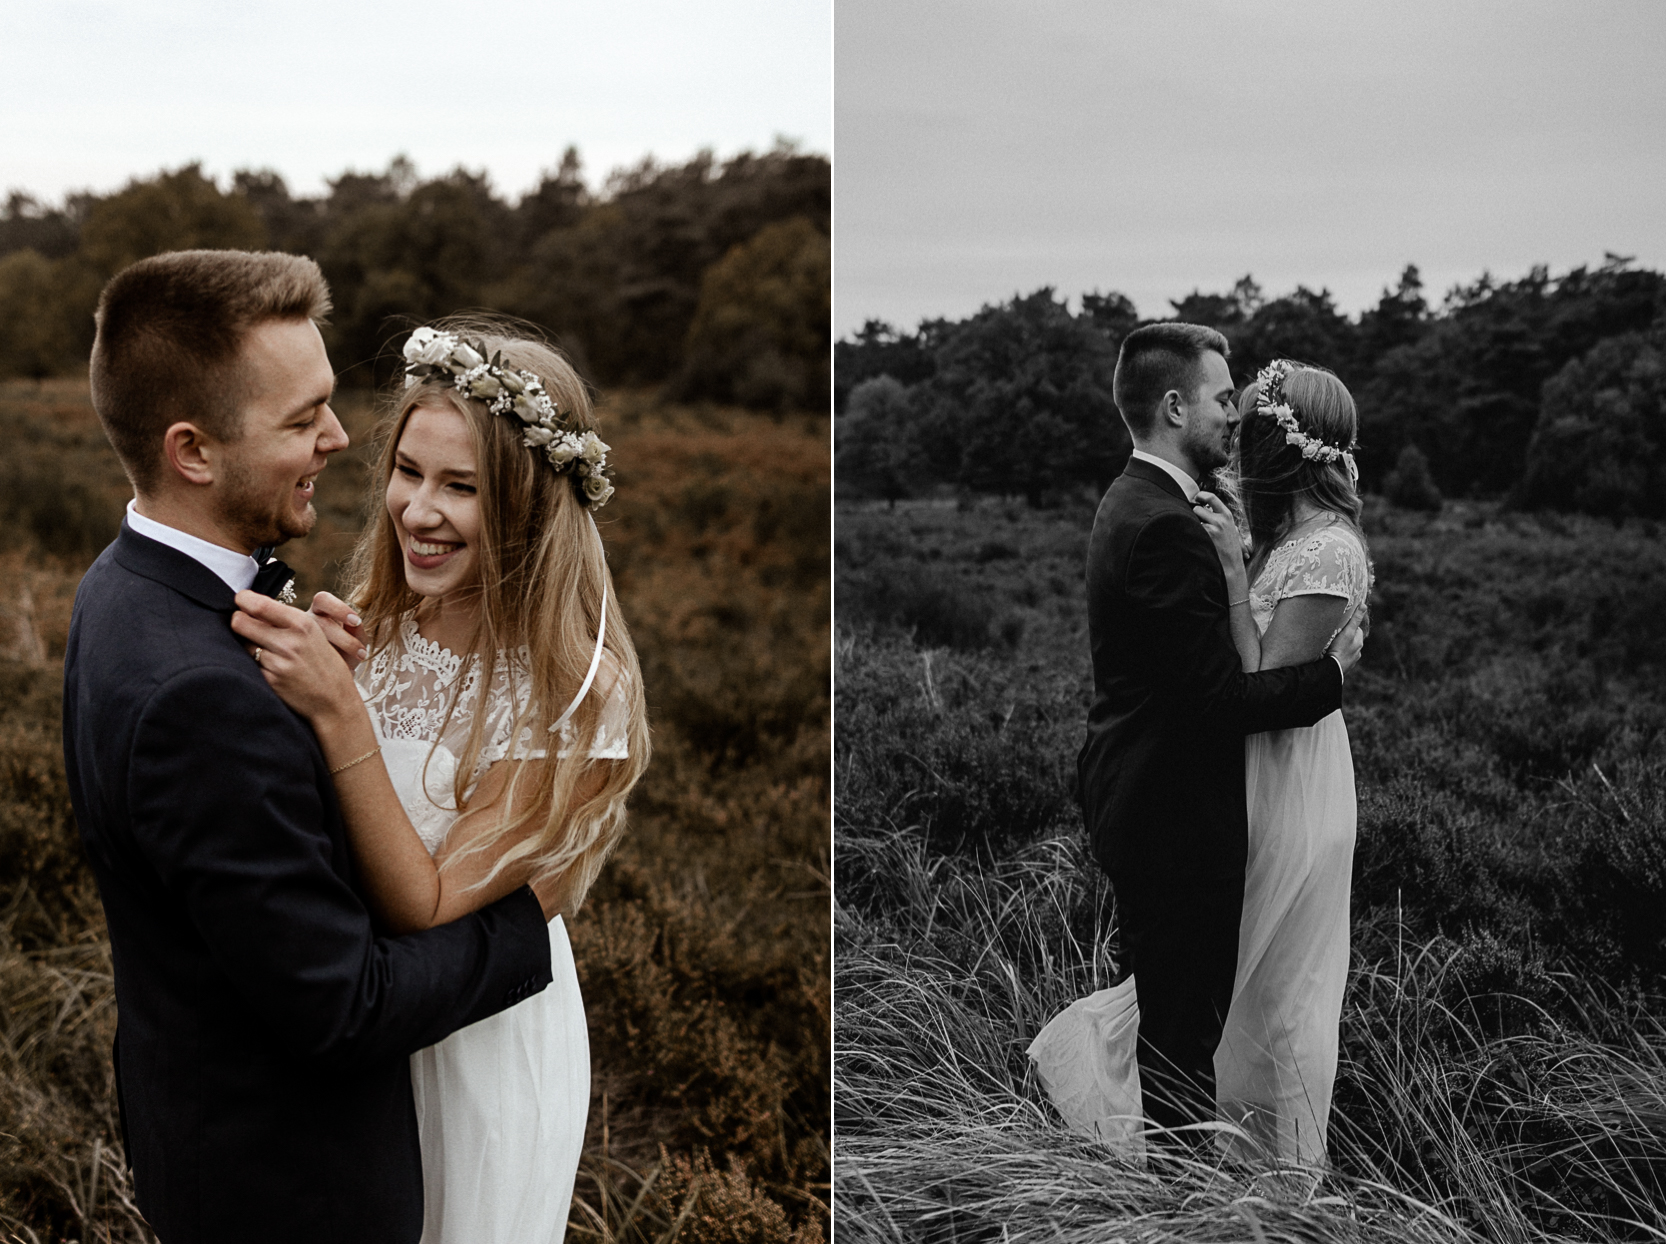 wholeheartedweddings-Timo-Matthies-Cathrin&Lukas-moddy-afterwedding-wahner-Heide-Cologne-hoch-019.jpg